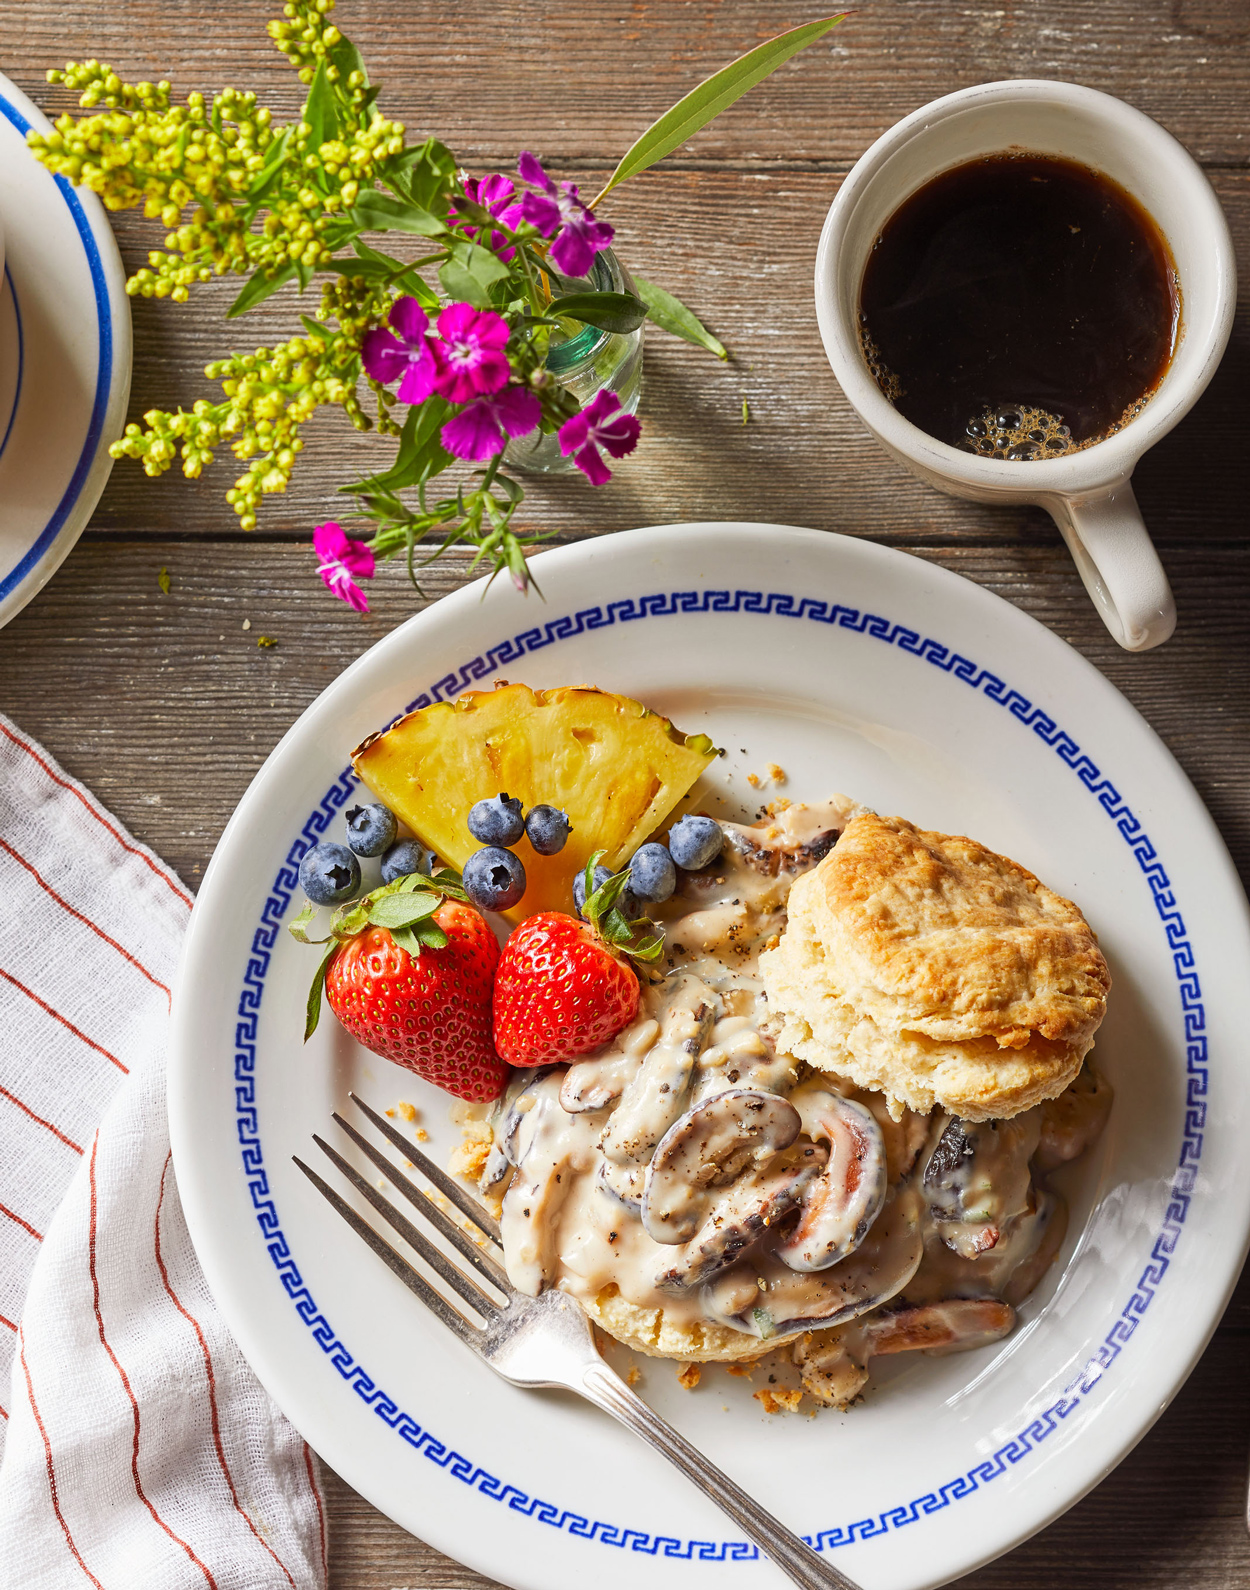 Buttermilk biscuits and mushroom gravy